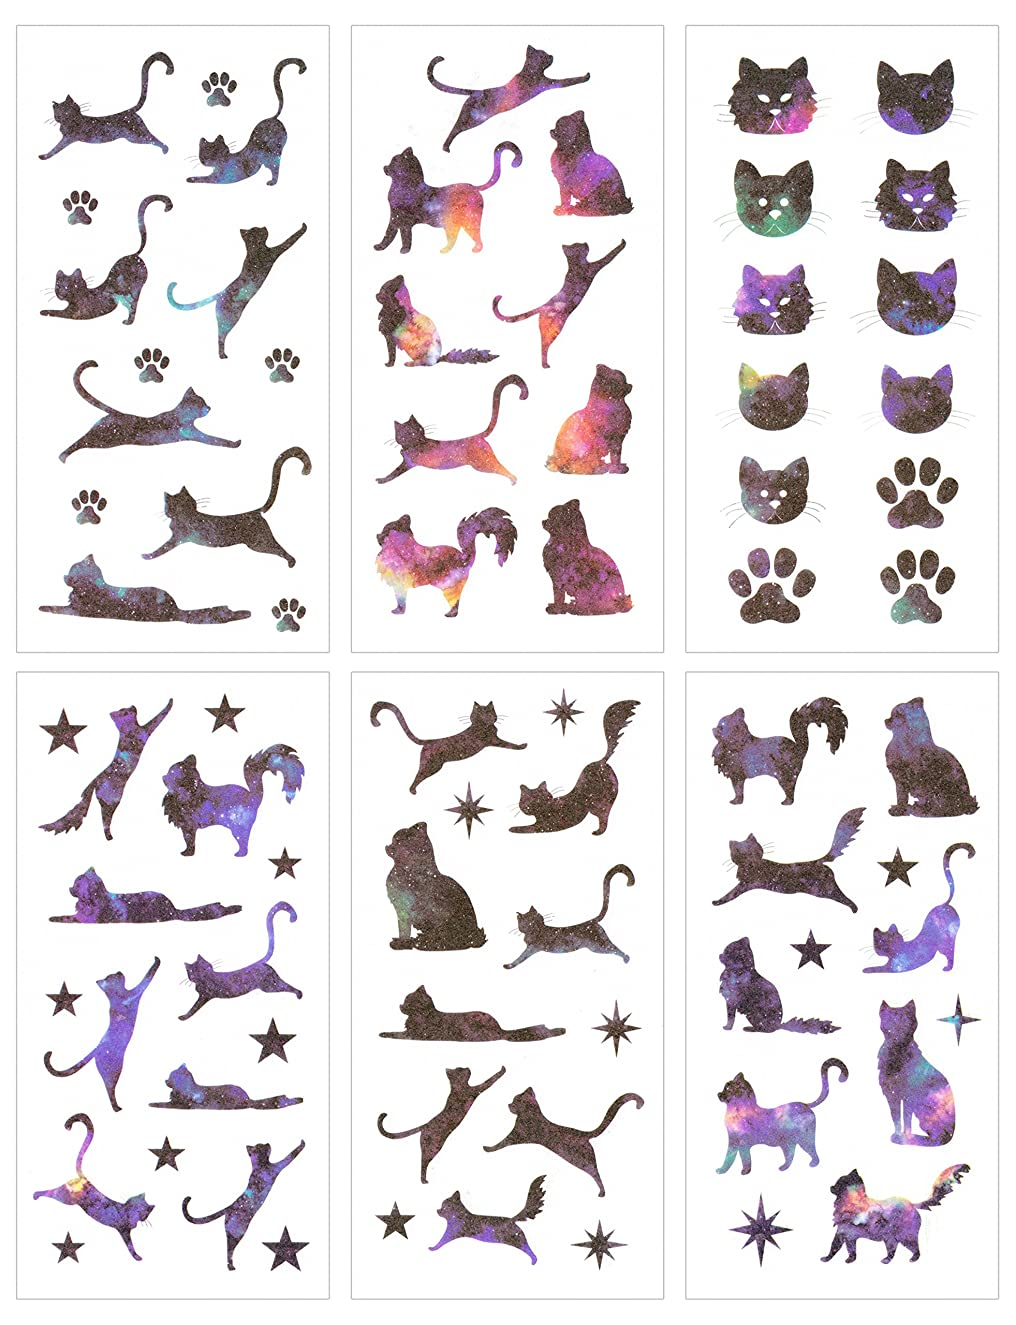 Cute Funny Cat Theme Washi Planner Sticker, Decorative Adhesive Sticker, Craft Scrapbooking Sticker Set for Diary, Album, Notebook, Bullet Journal, 12 Sheets/Pack(Star Cat)